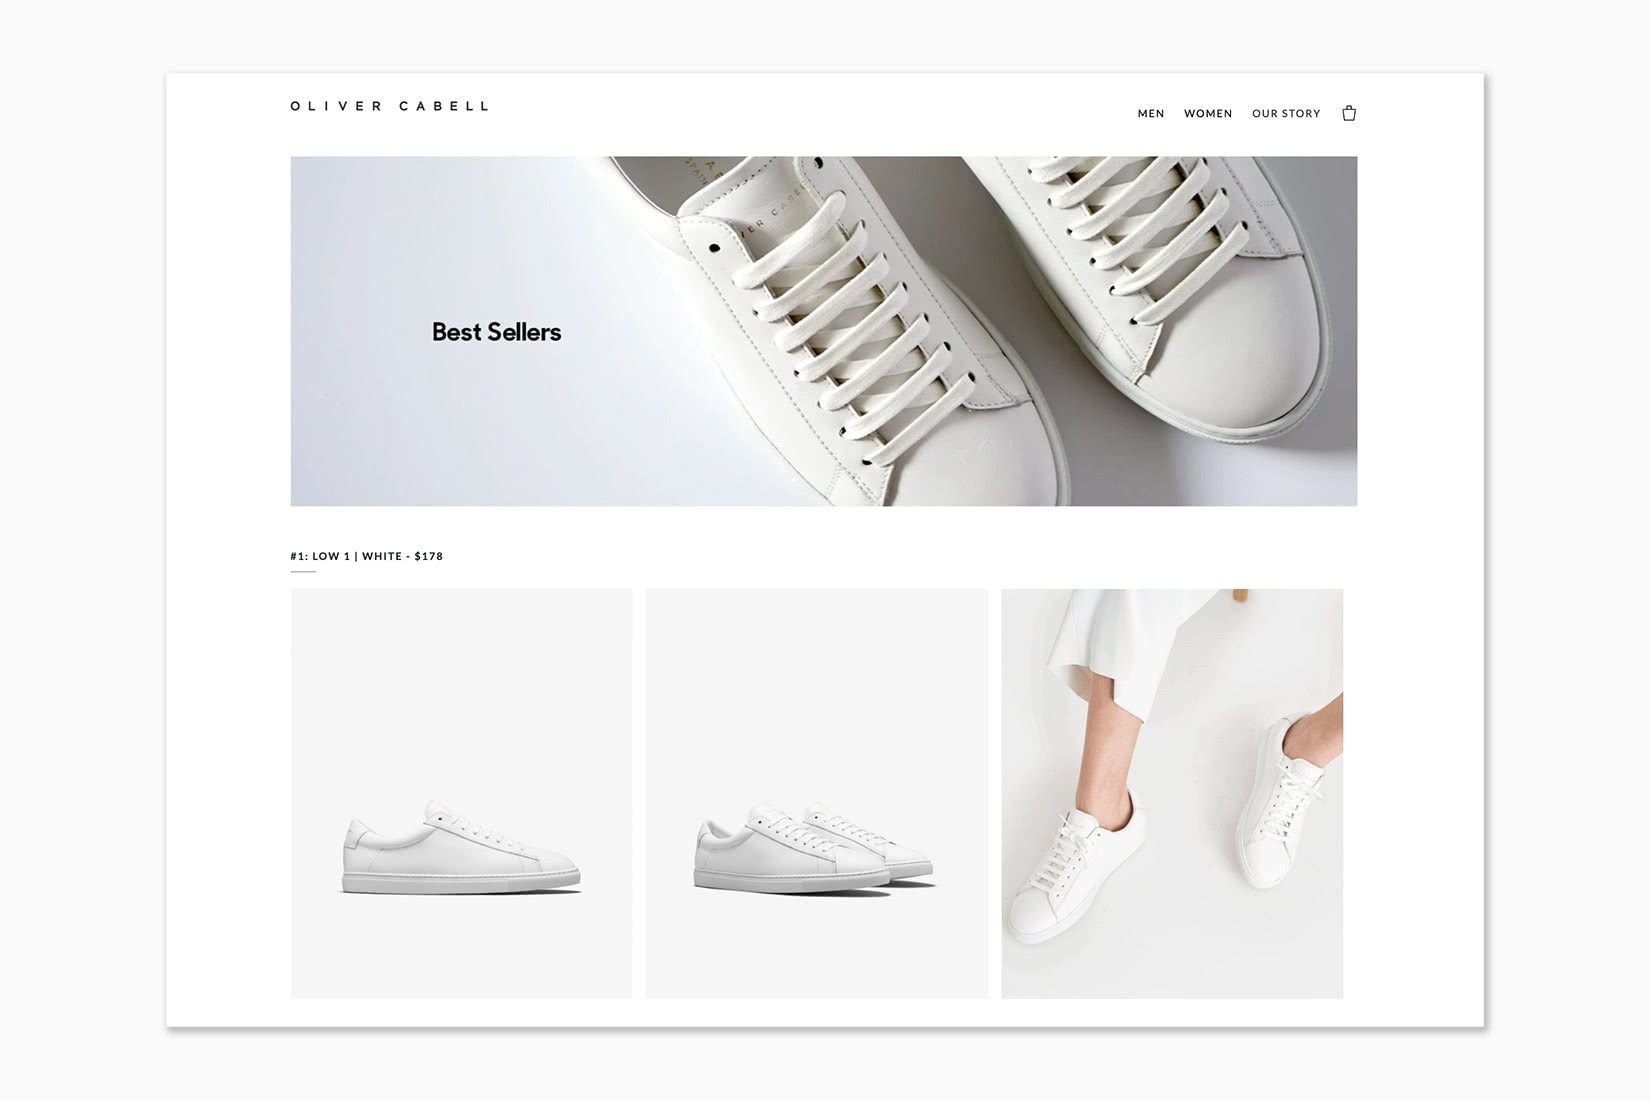 best online shopping sites women Oliver Cabell - Luxe Digital